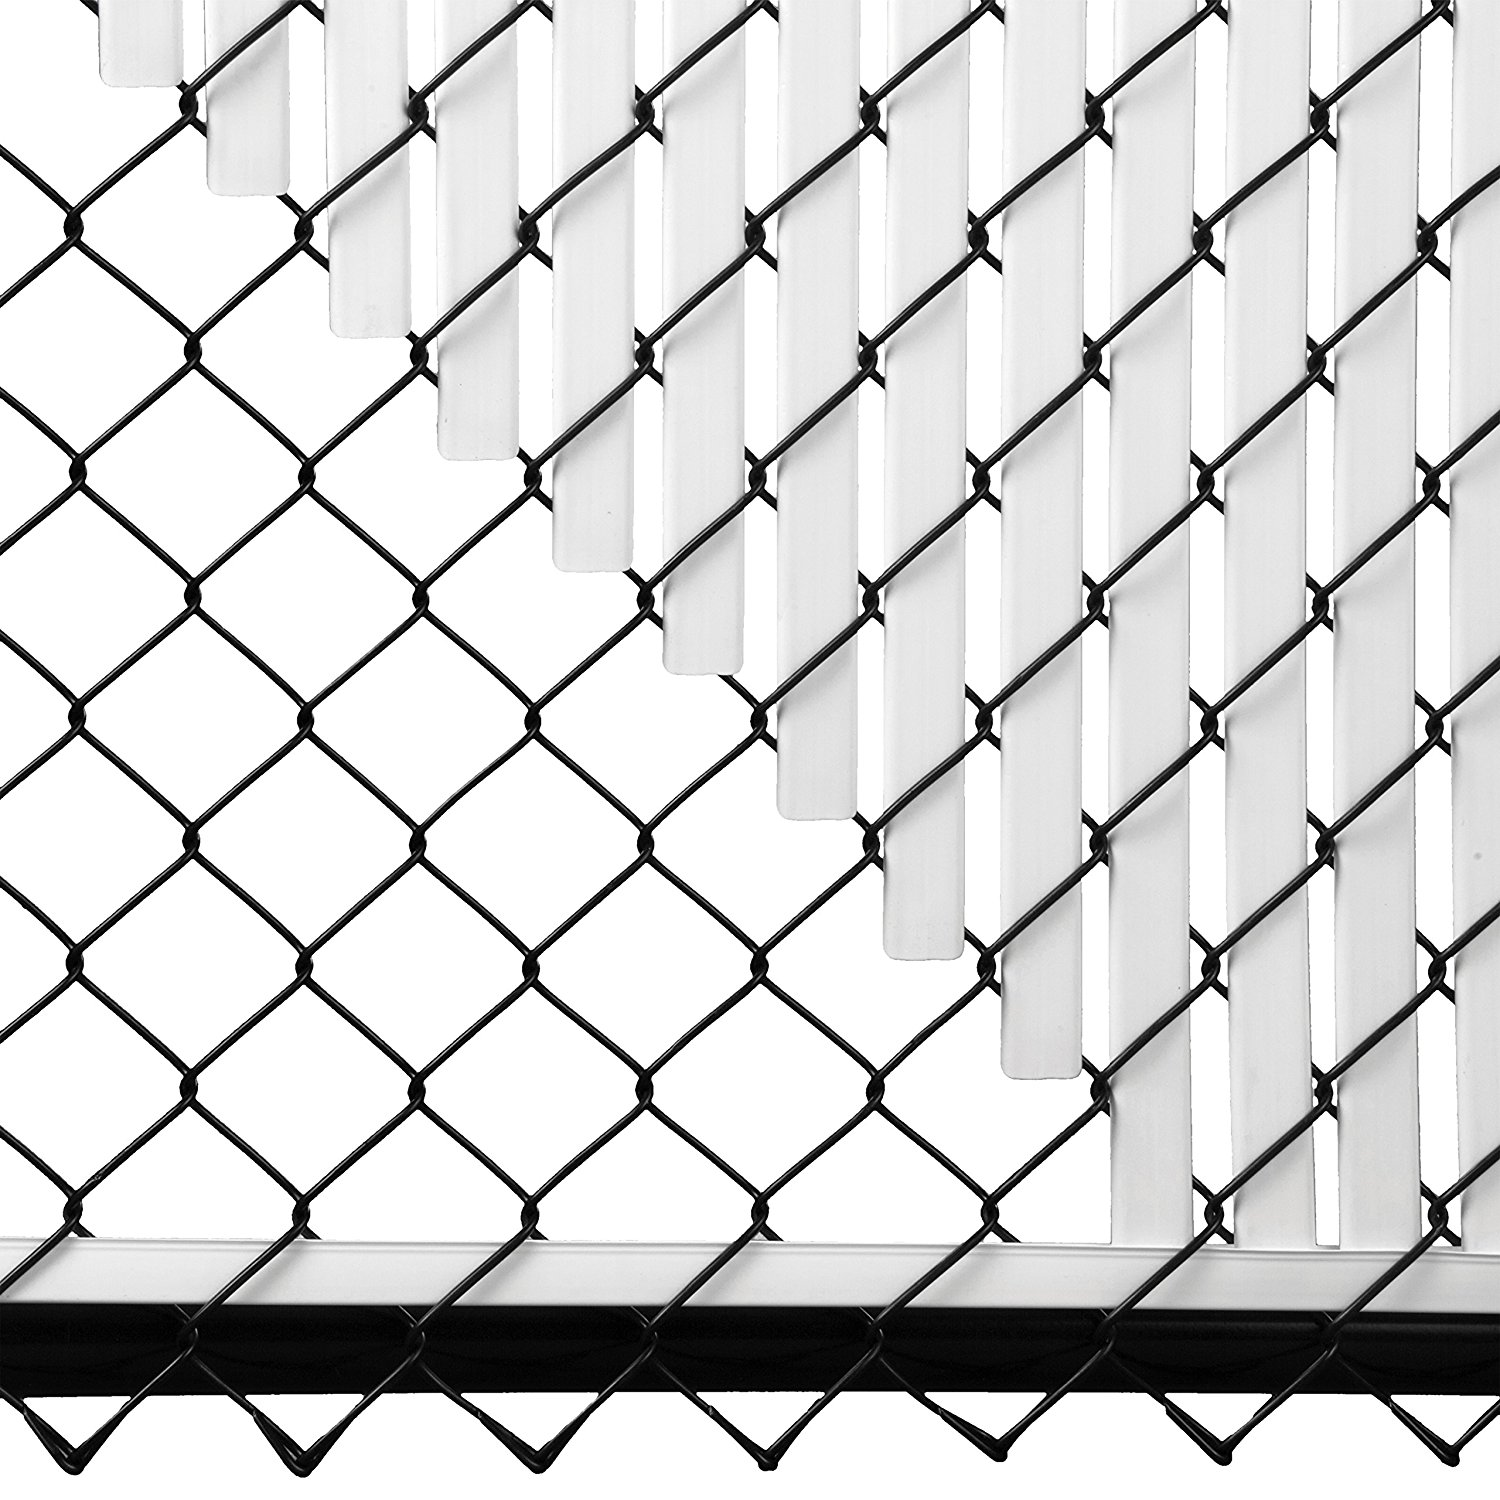 Chain Link Drawing at GetDrawings.com | Free for personal use Chain ...